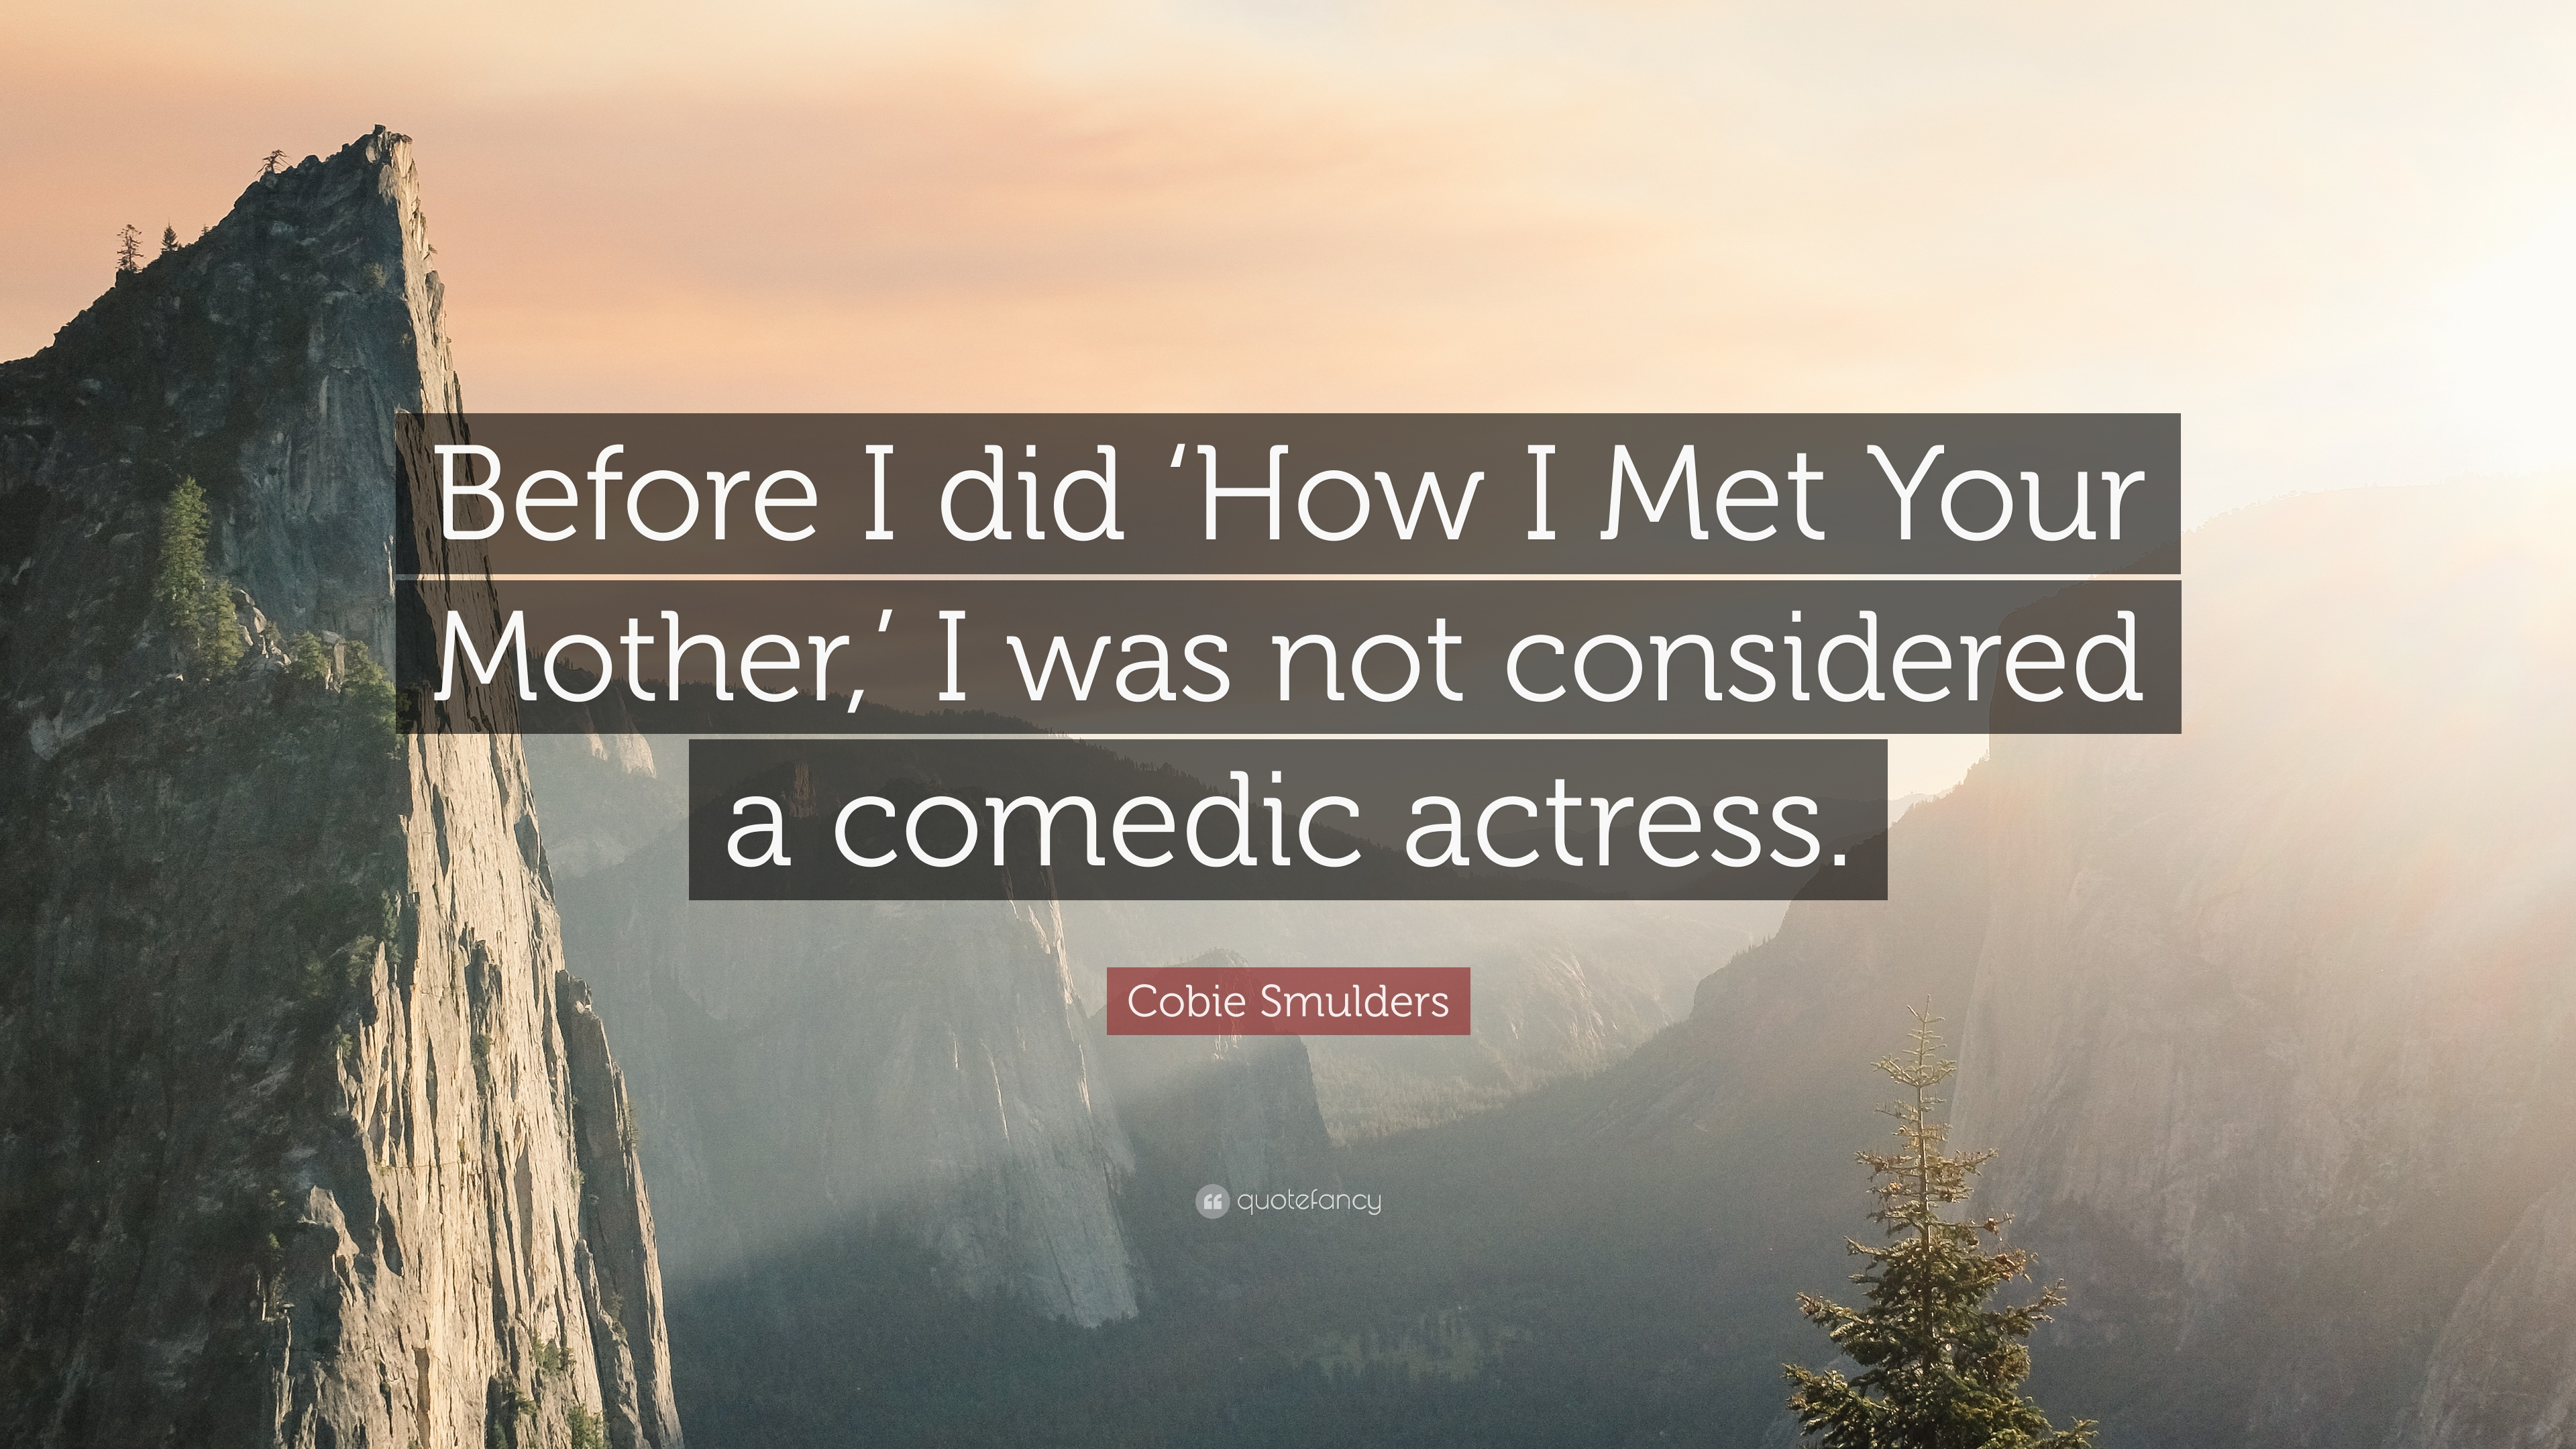 """How I Met Your Mother Quotes Cobie Smulders Quote: """"Before I did 'How I Met Your Mother,' I was  How I Met Your Mother Quotes"""